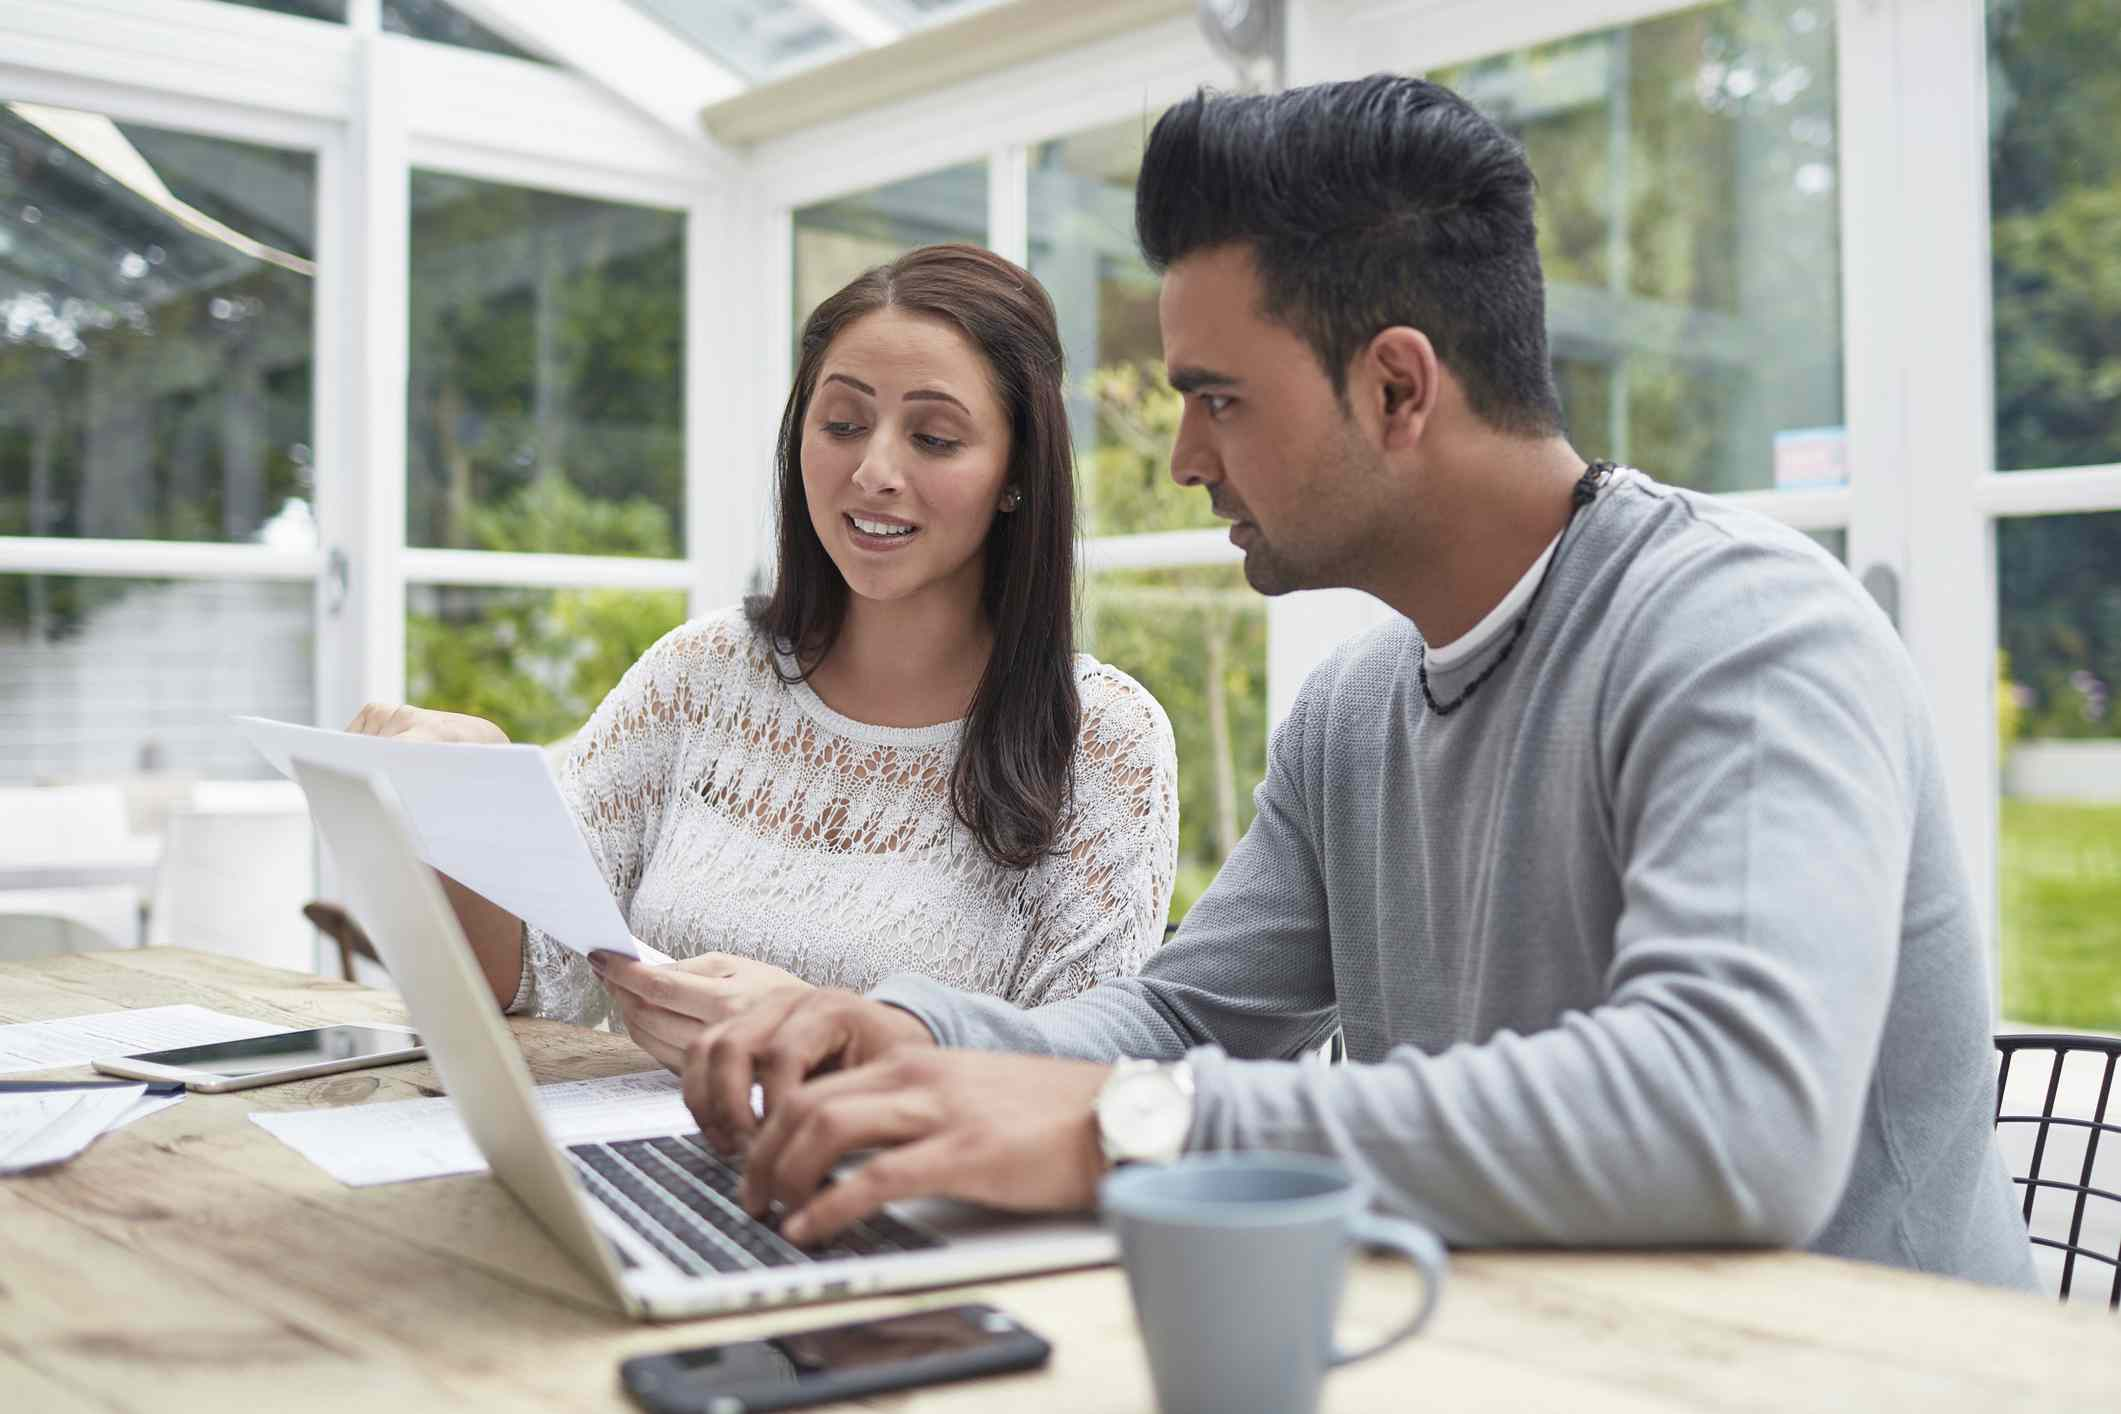 Woman showing document to man using laptop